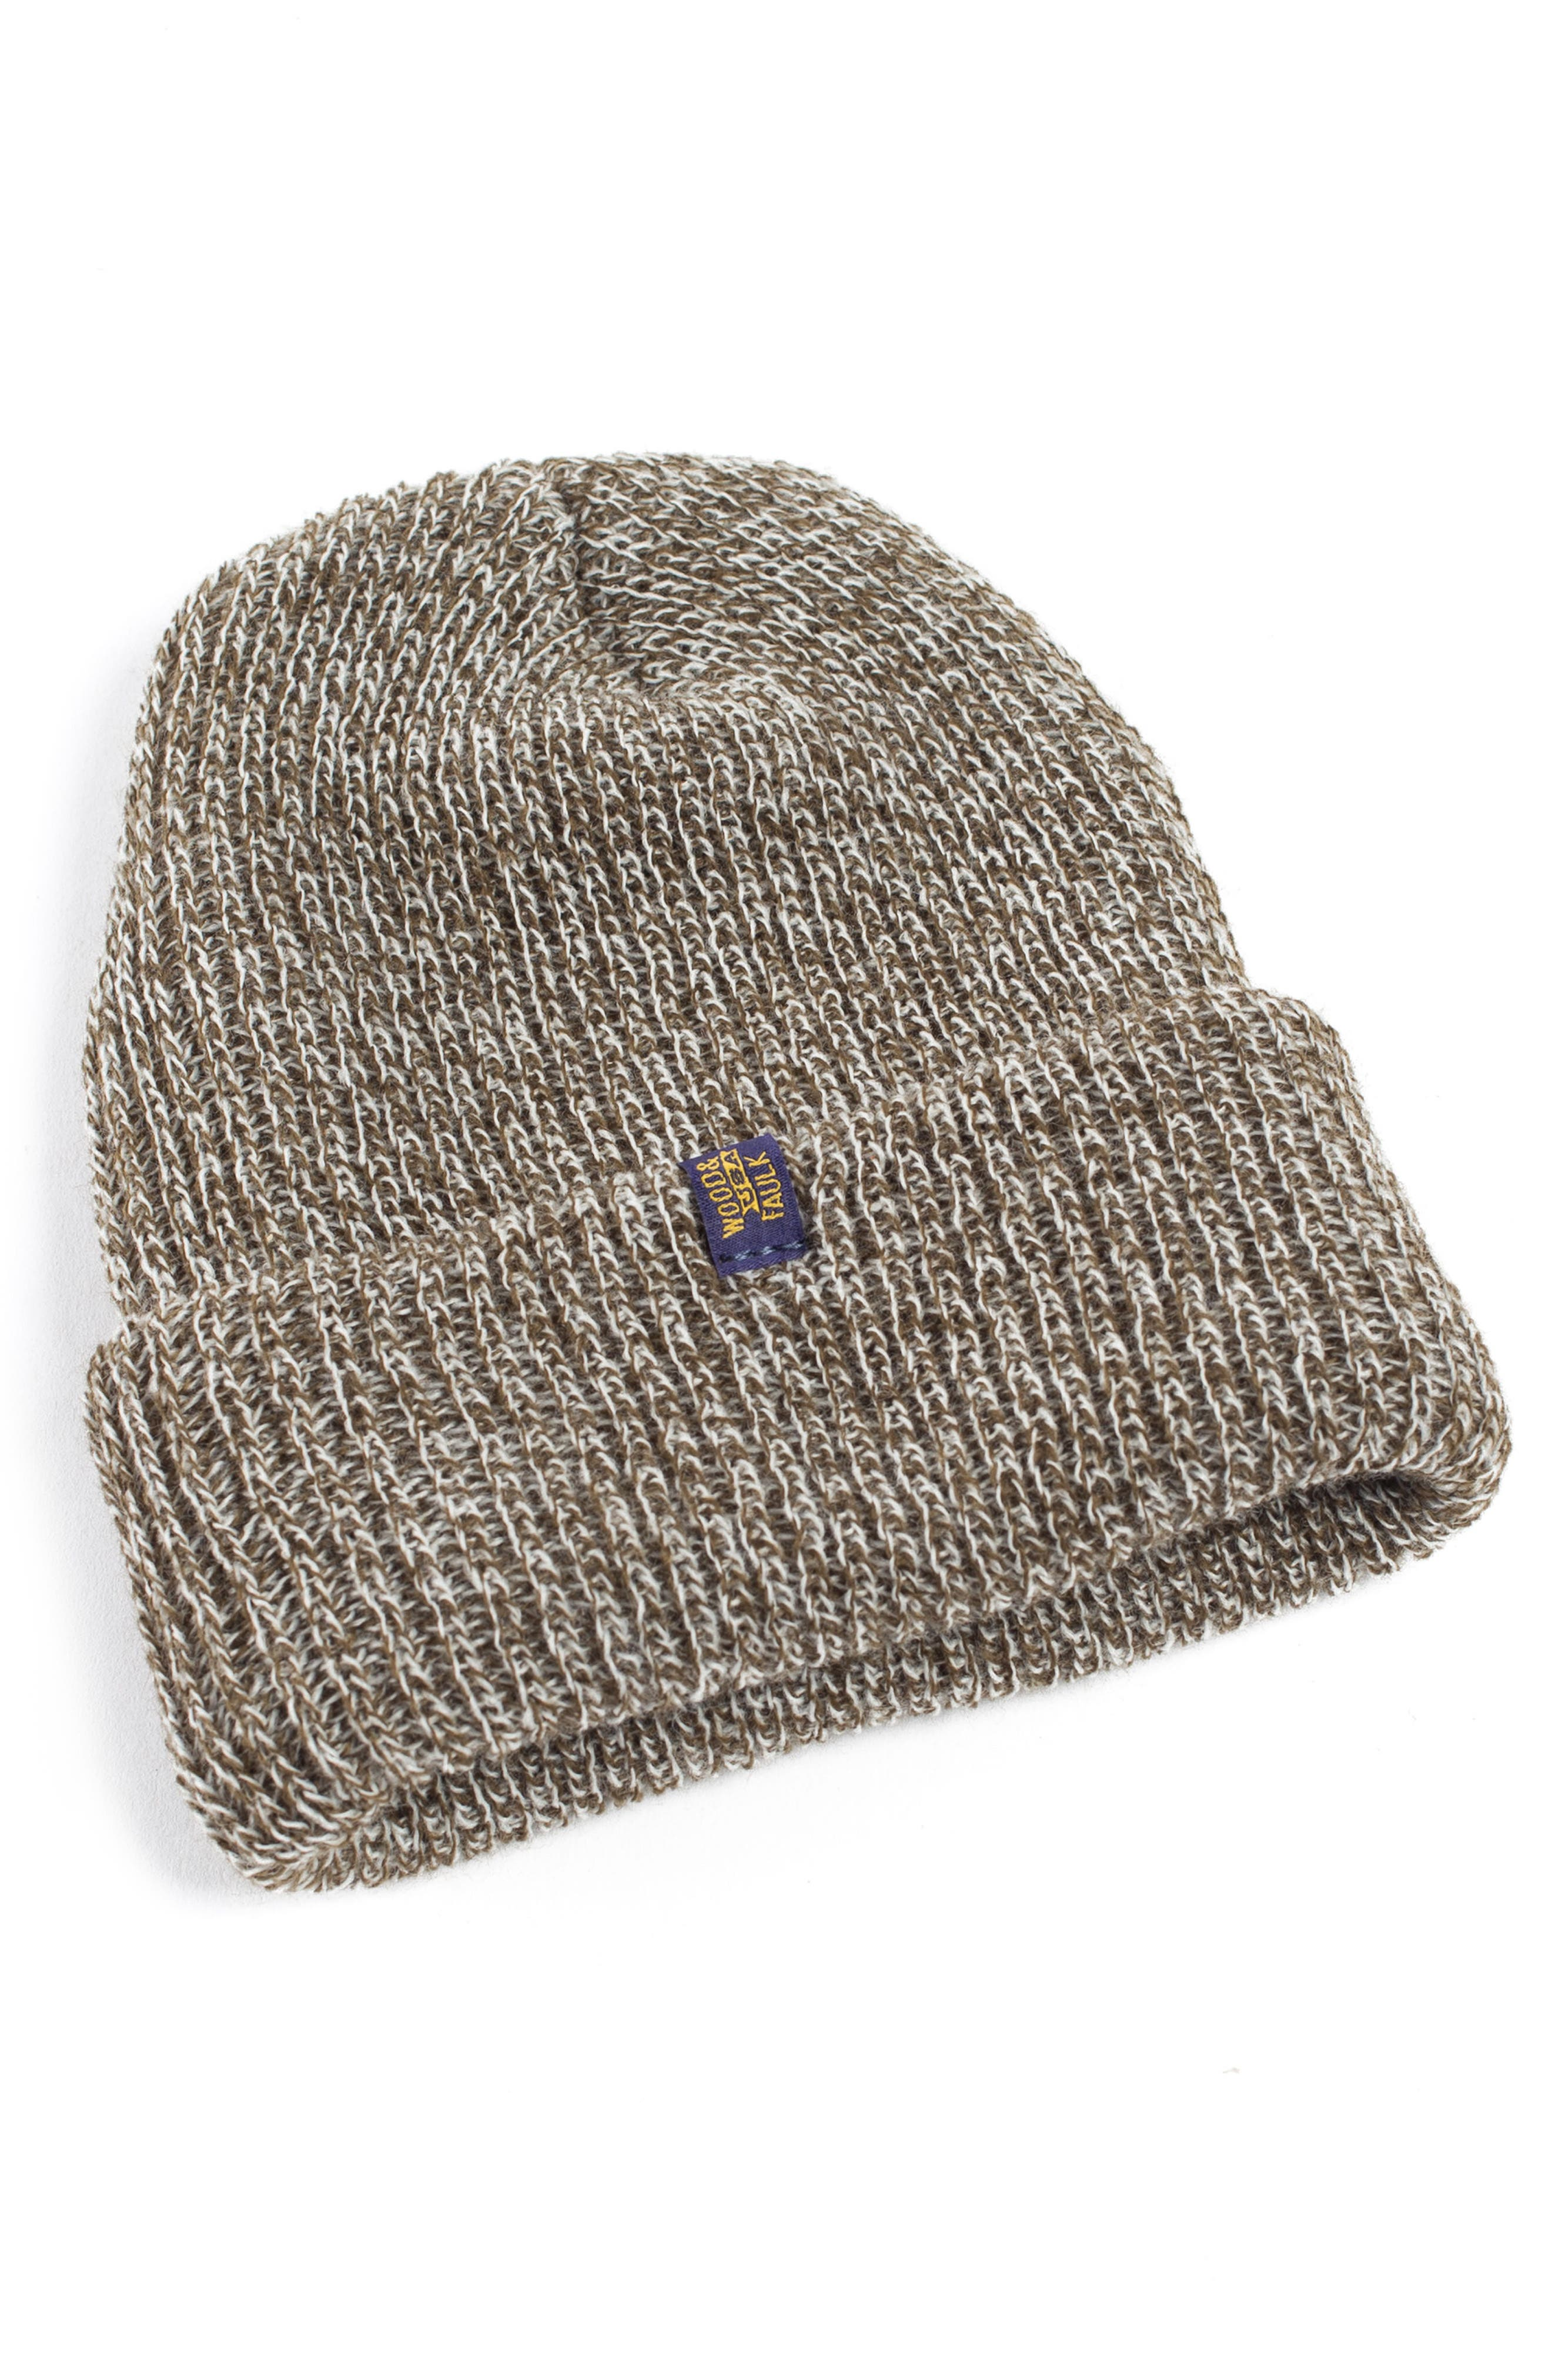 Wood & Faulk Knit Cap